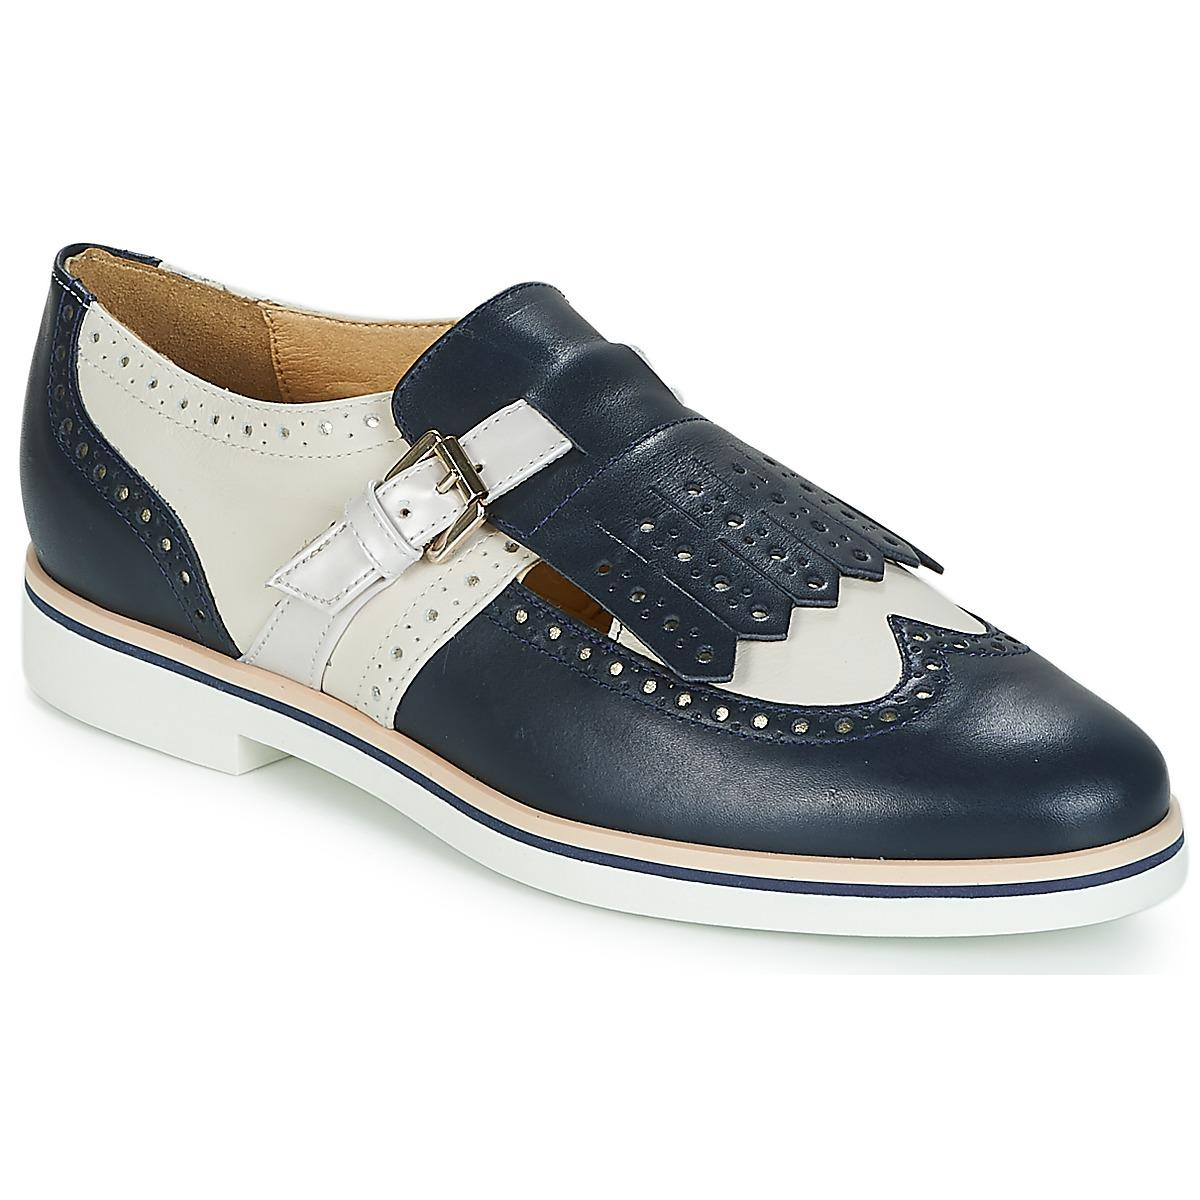 db1853c458 ... Geox - Blue Janalee B Casual Shoes - Lyst. Visit Spartoo. Tap to visit  site